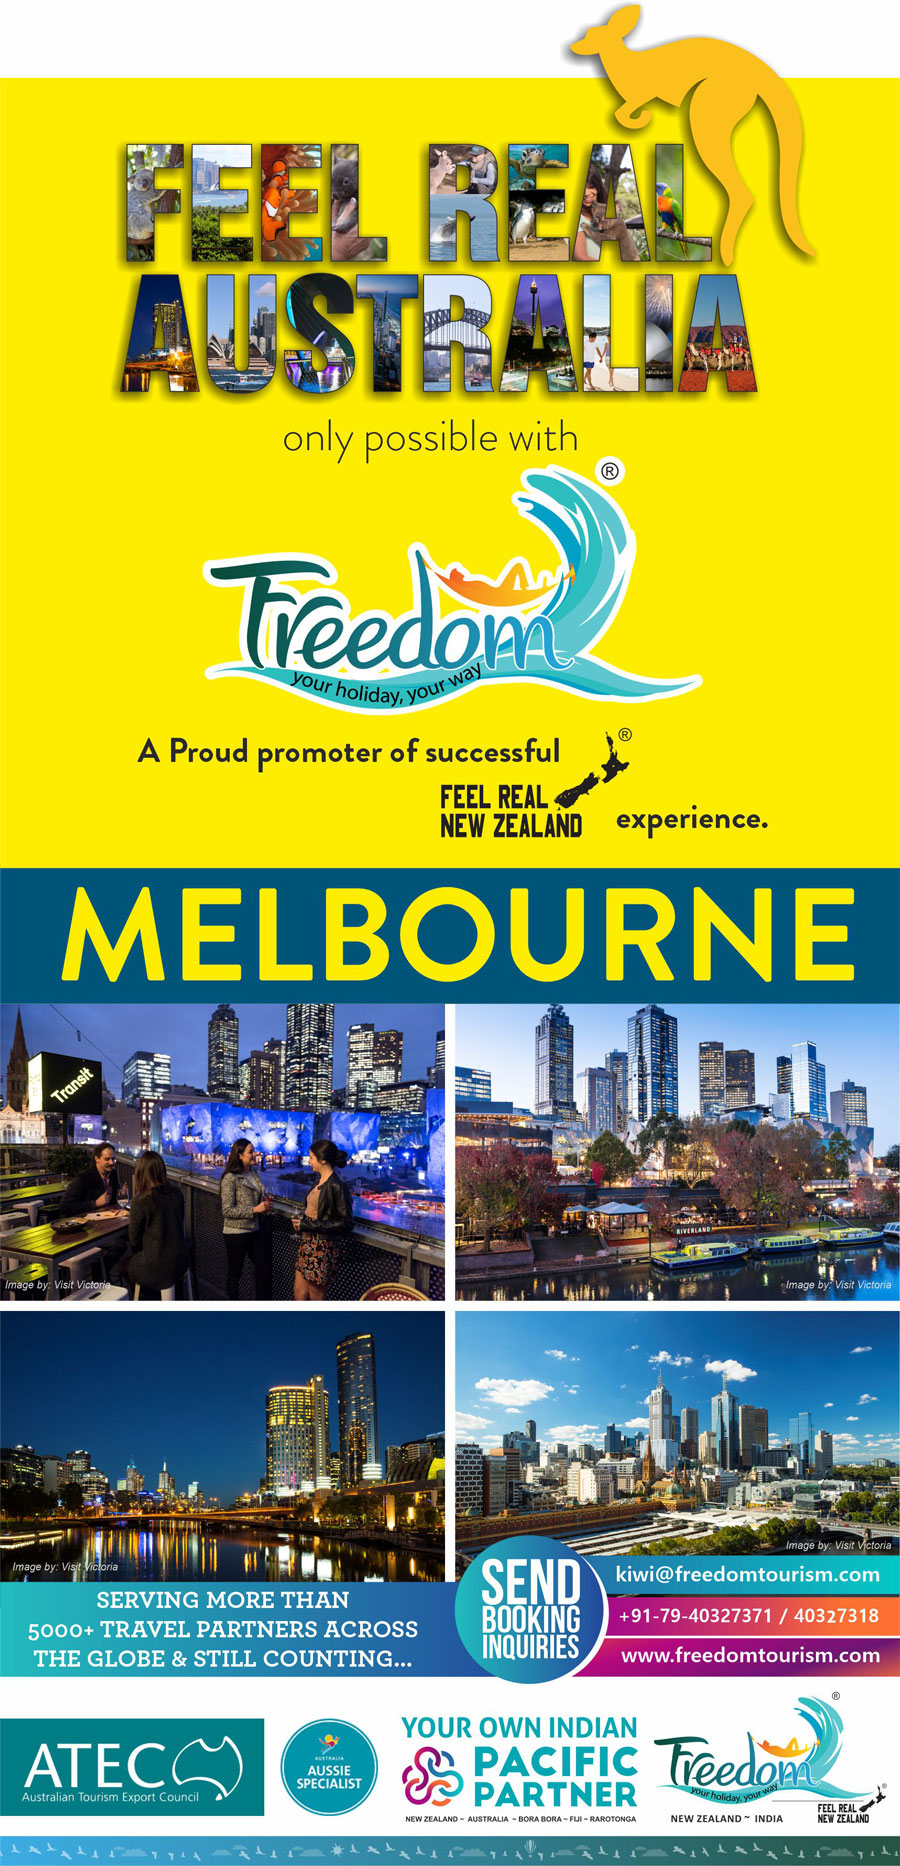 Feel Real Australia with Freedom Tourism